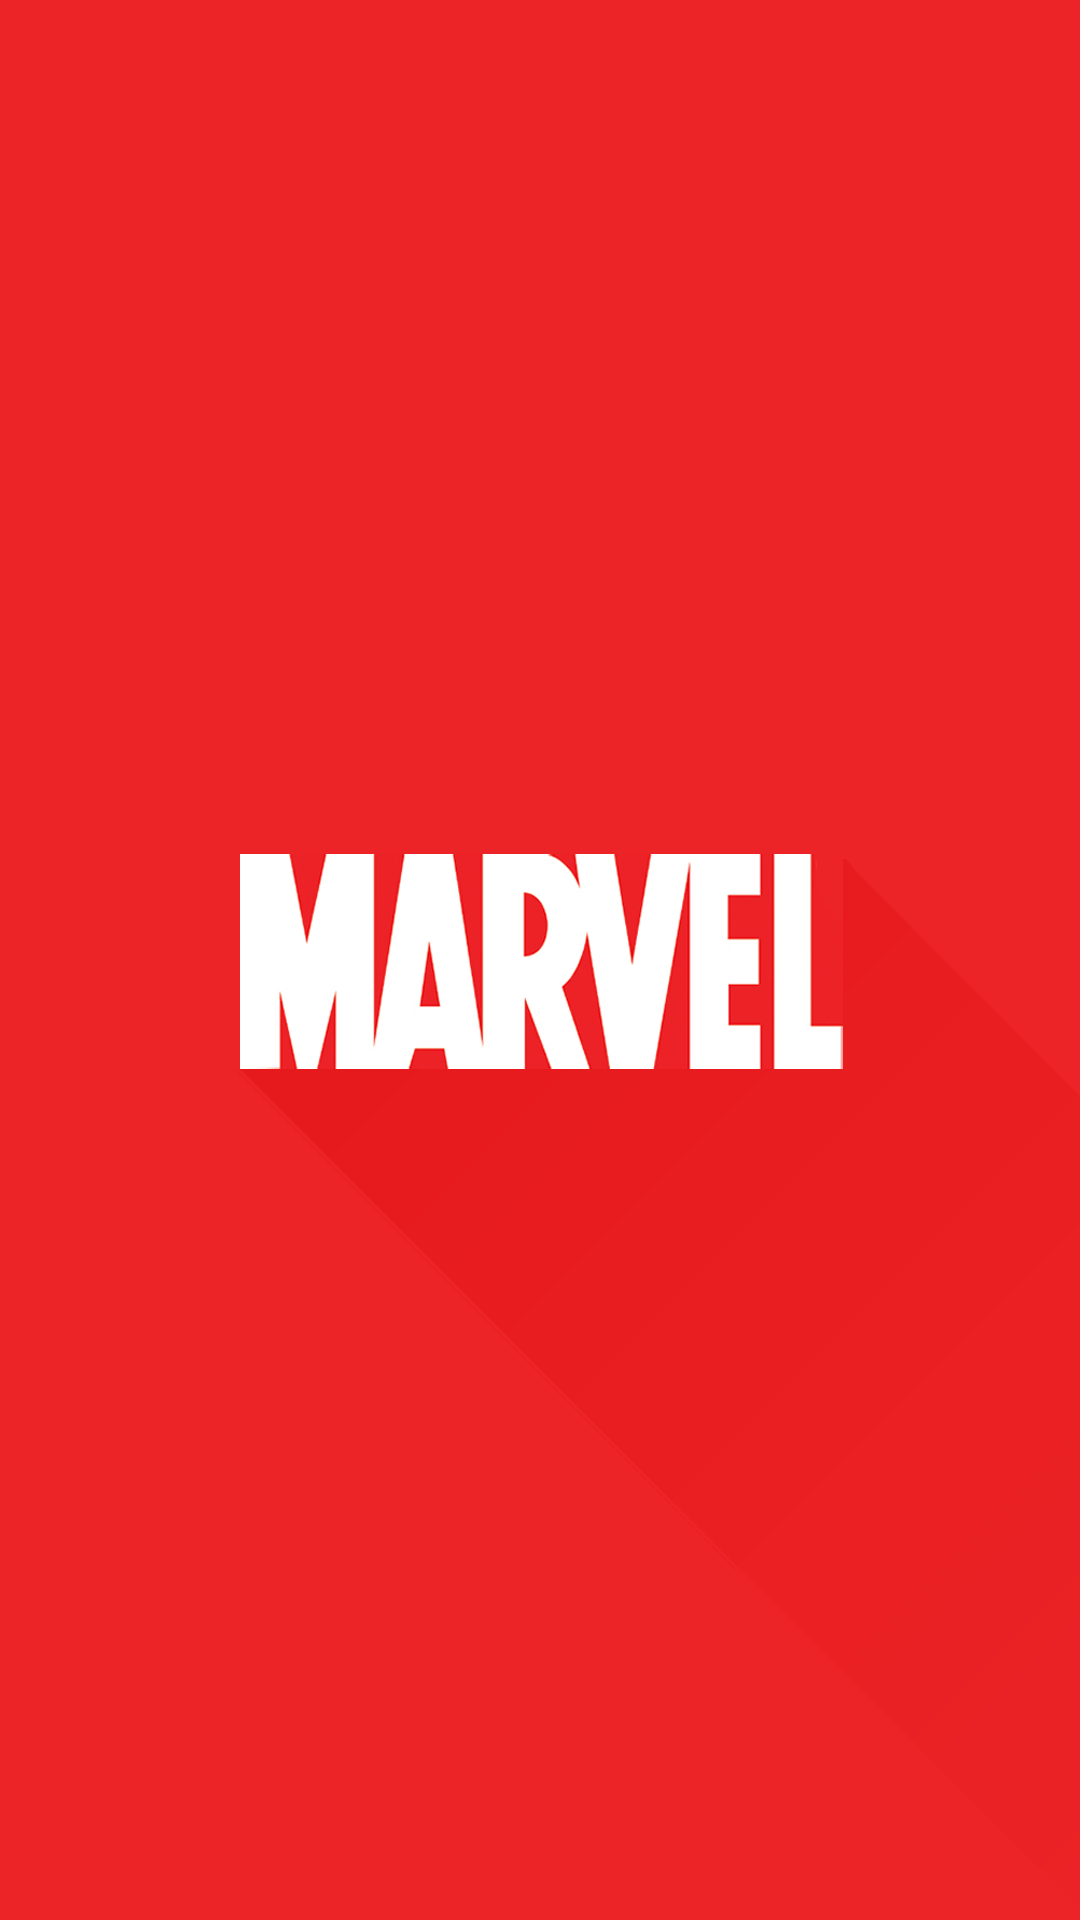 List of Latest Hero Logo Wallpaper for iPhone 11 Pro Max This Month uploade by hupages.com